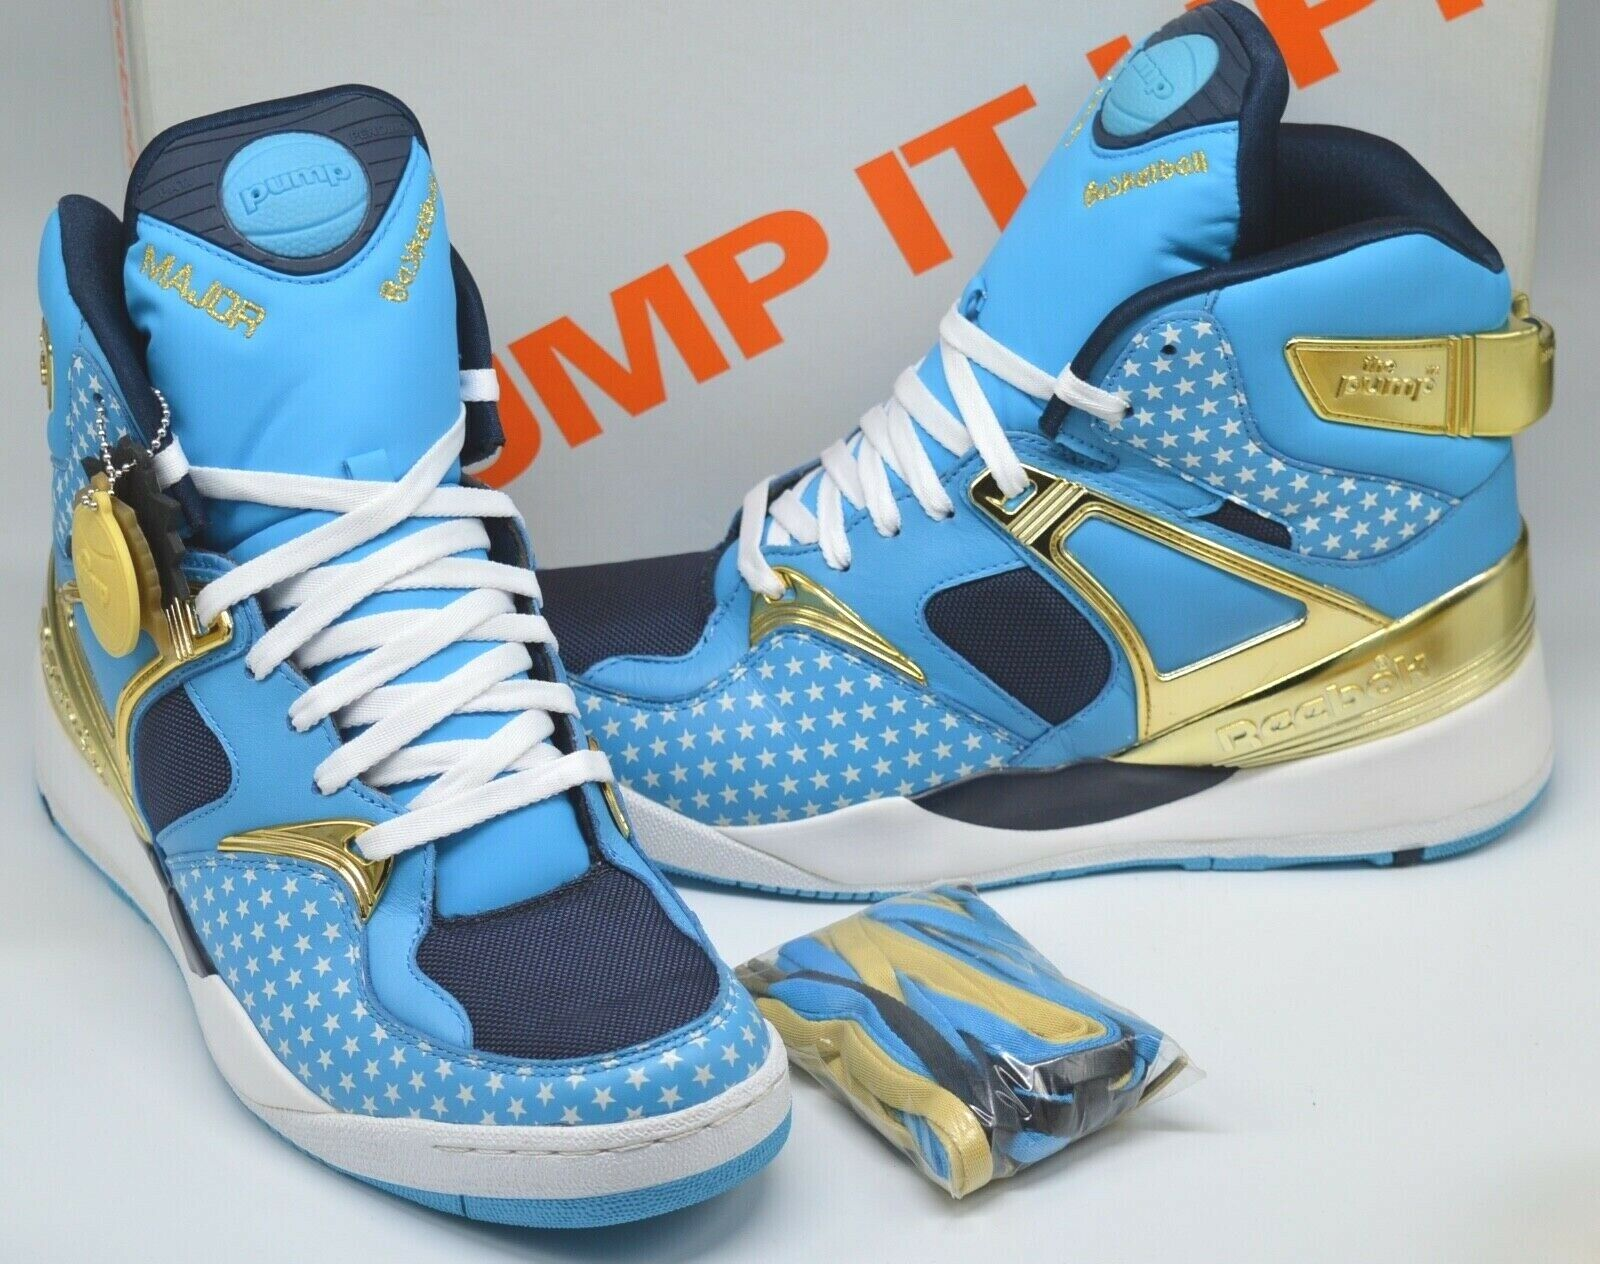 Reebok The Pump Certified Major